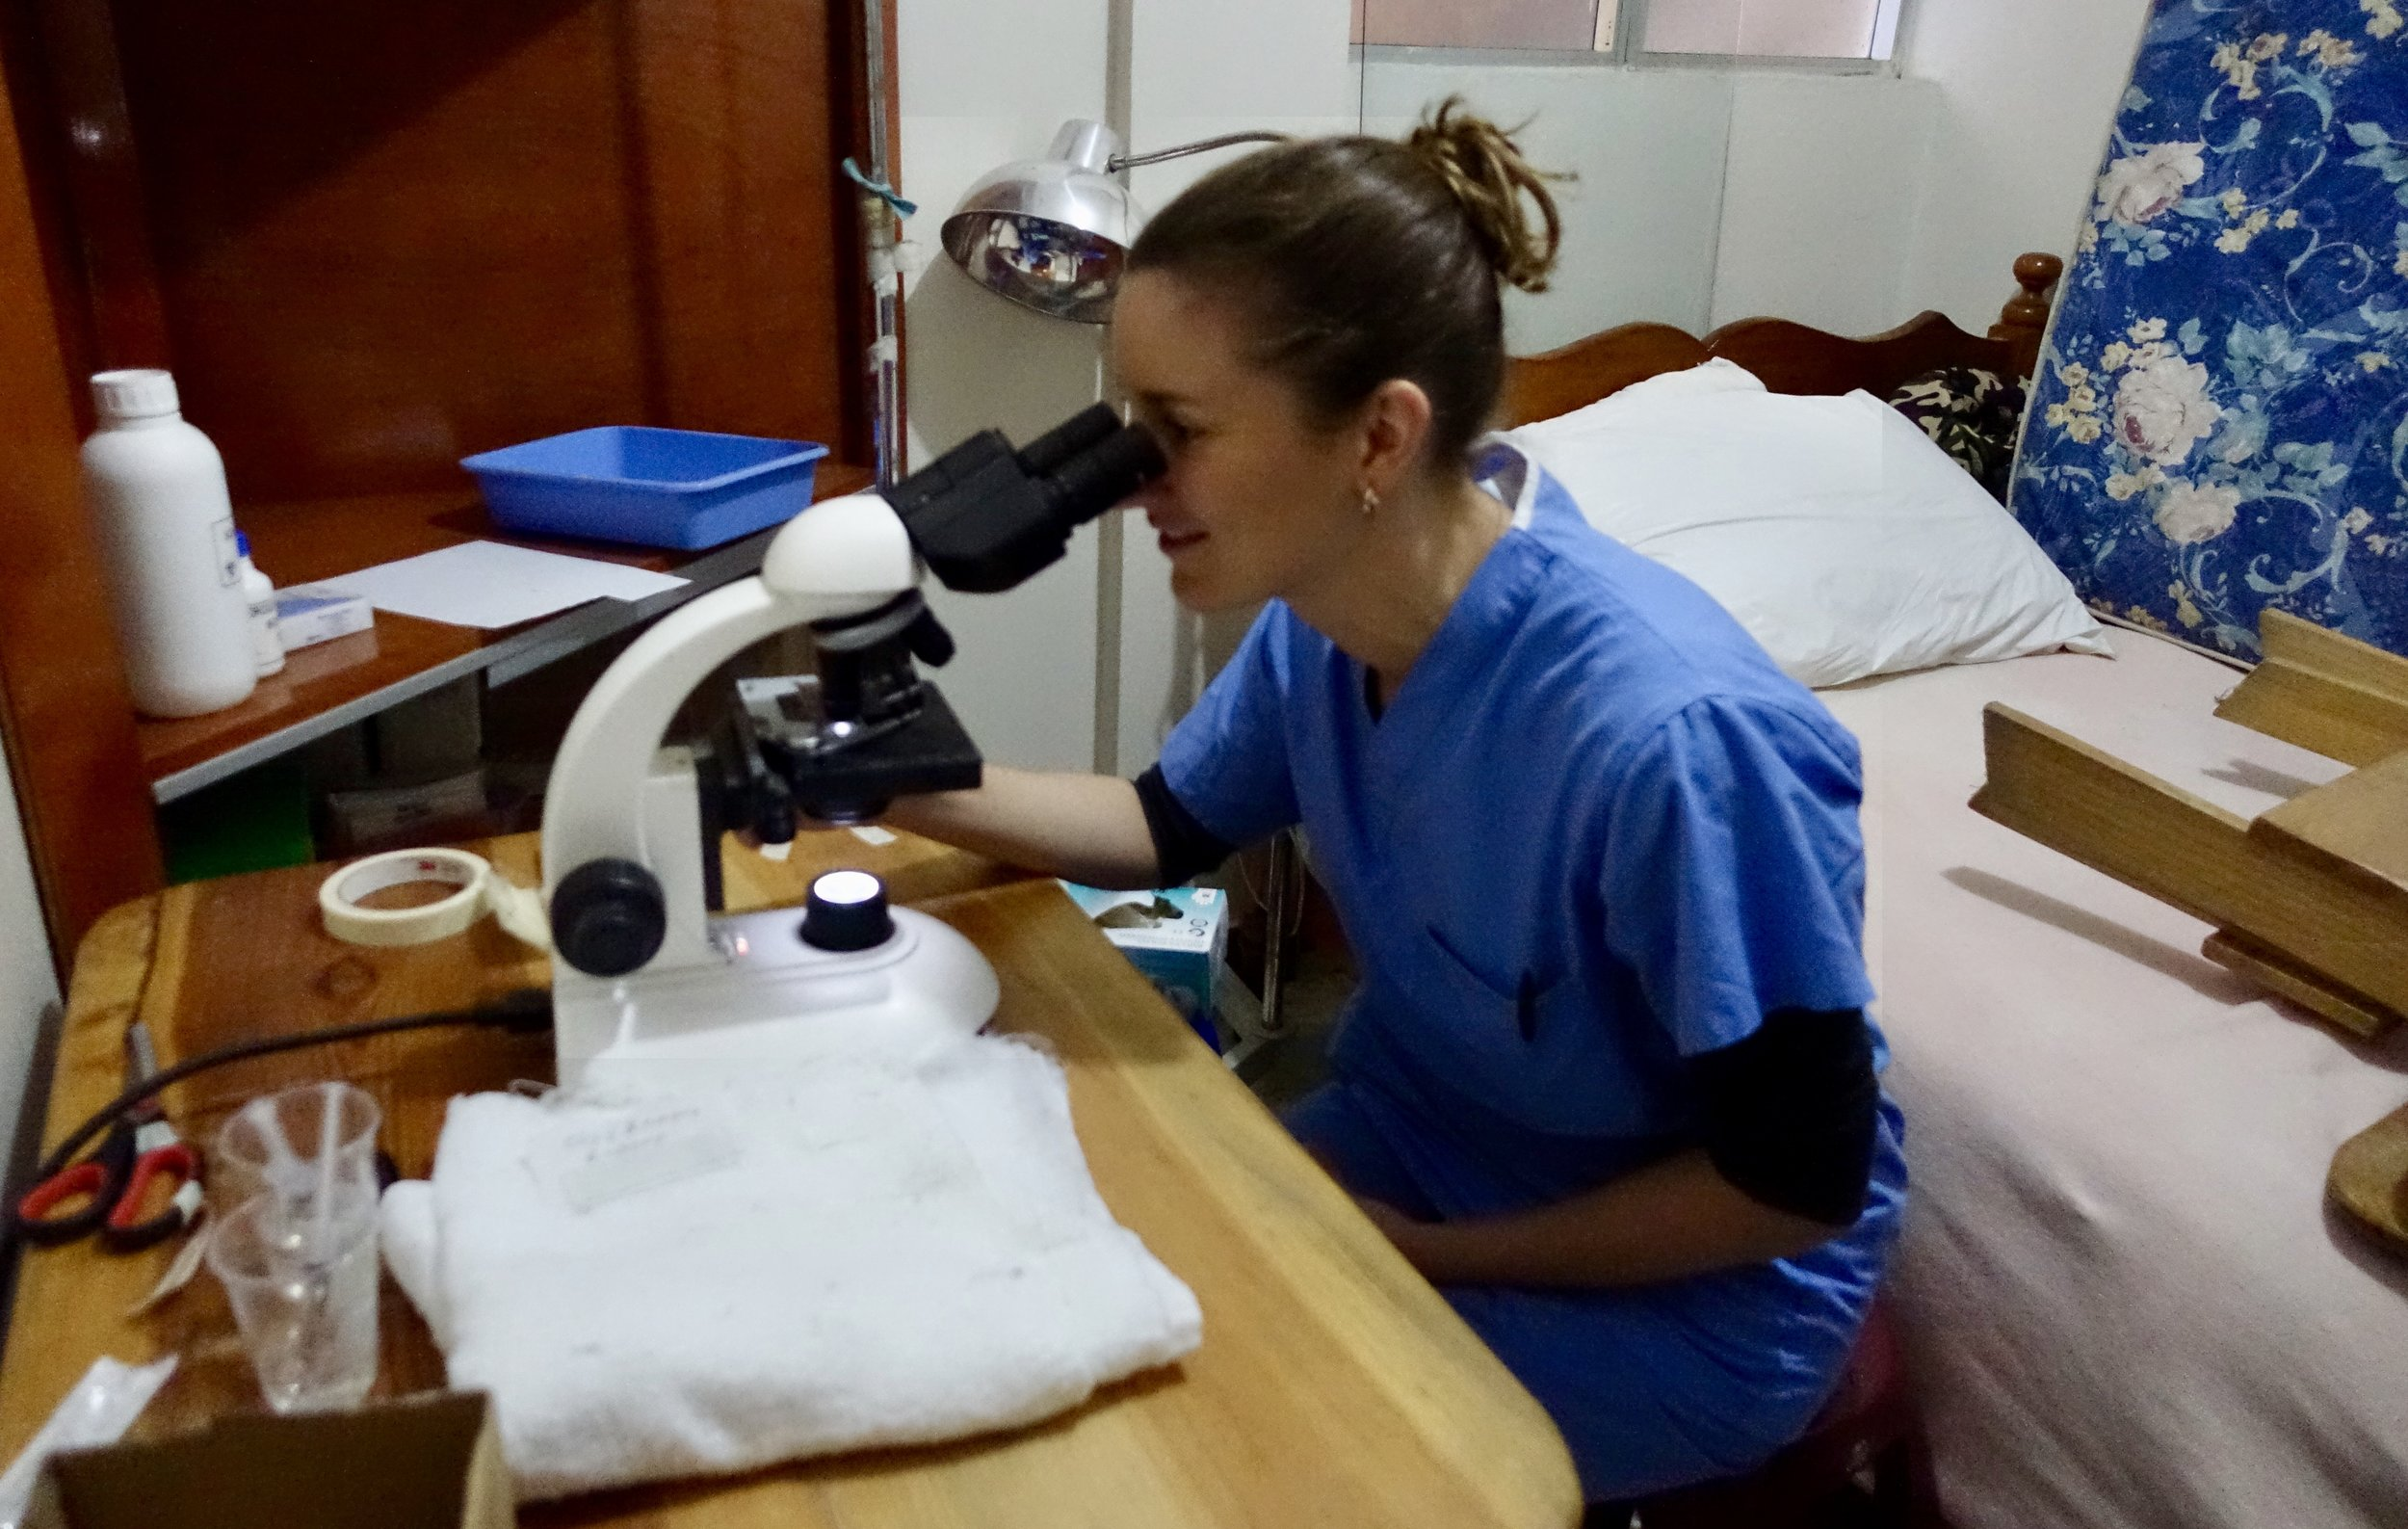 Mallory at work in the microscope room testing for possible infections